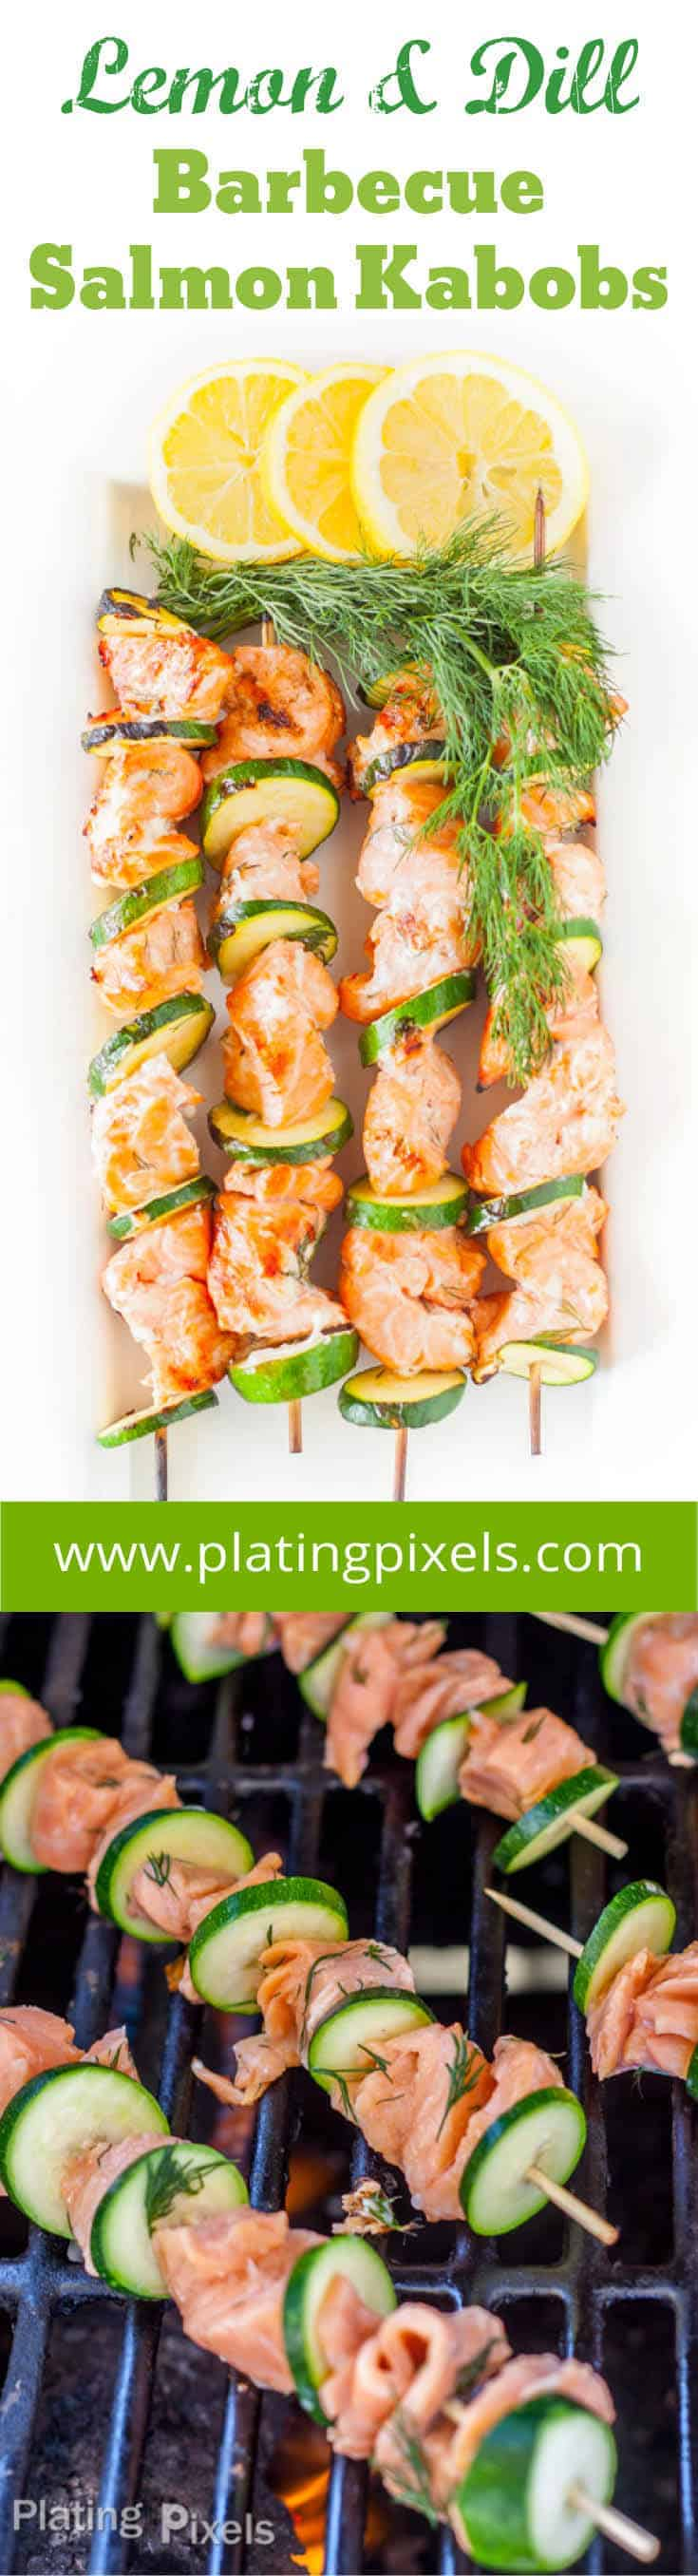 Grilled Salmon Kabobs with Lemon Dill Marinade is a healthy grilled salmon recipe that\'s loaded with flavor. A simple vinegar, lemon juice, and lemon zest marinade add a nice zing to salmon with less than 30 minutes of marinating time. You\'ll stand out at you next grilling party with these unique fish kabobs. #salmon #kabobs #kebobs #grilled #salmonkabob